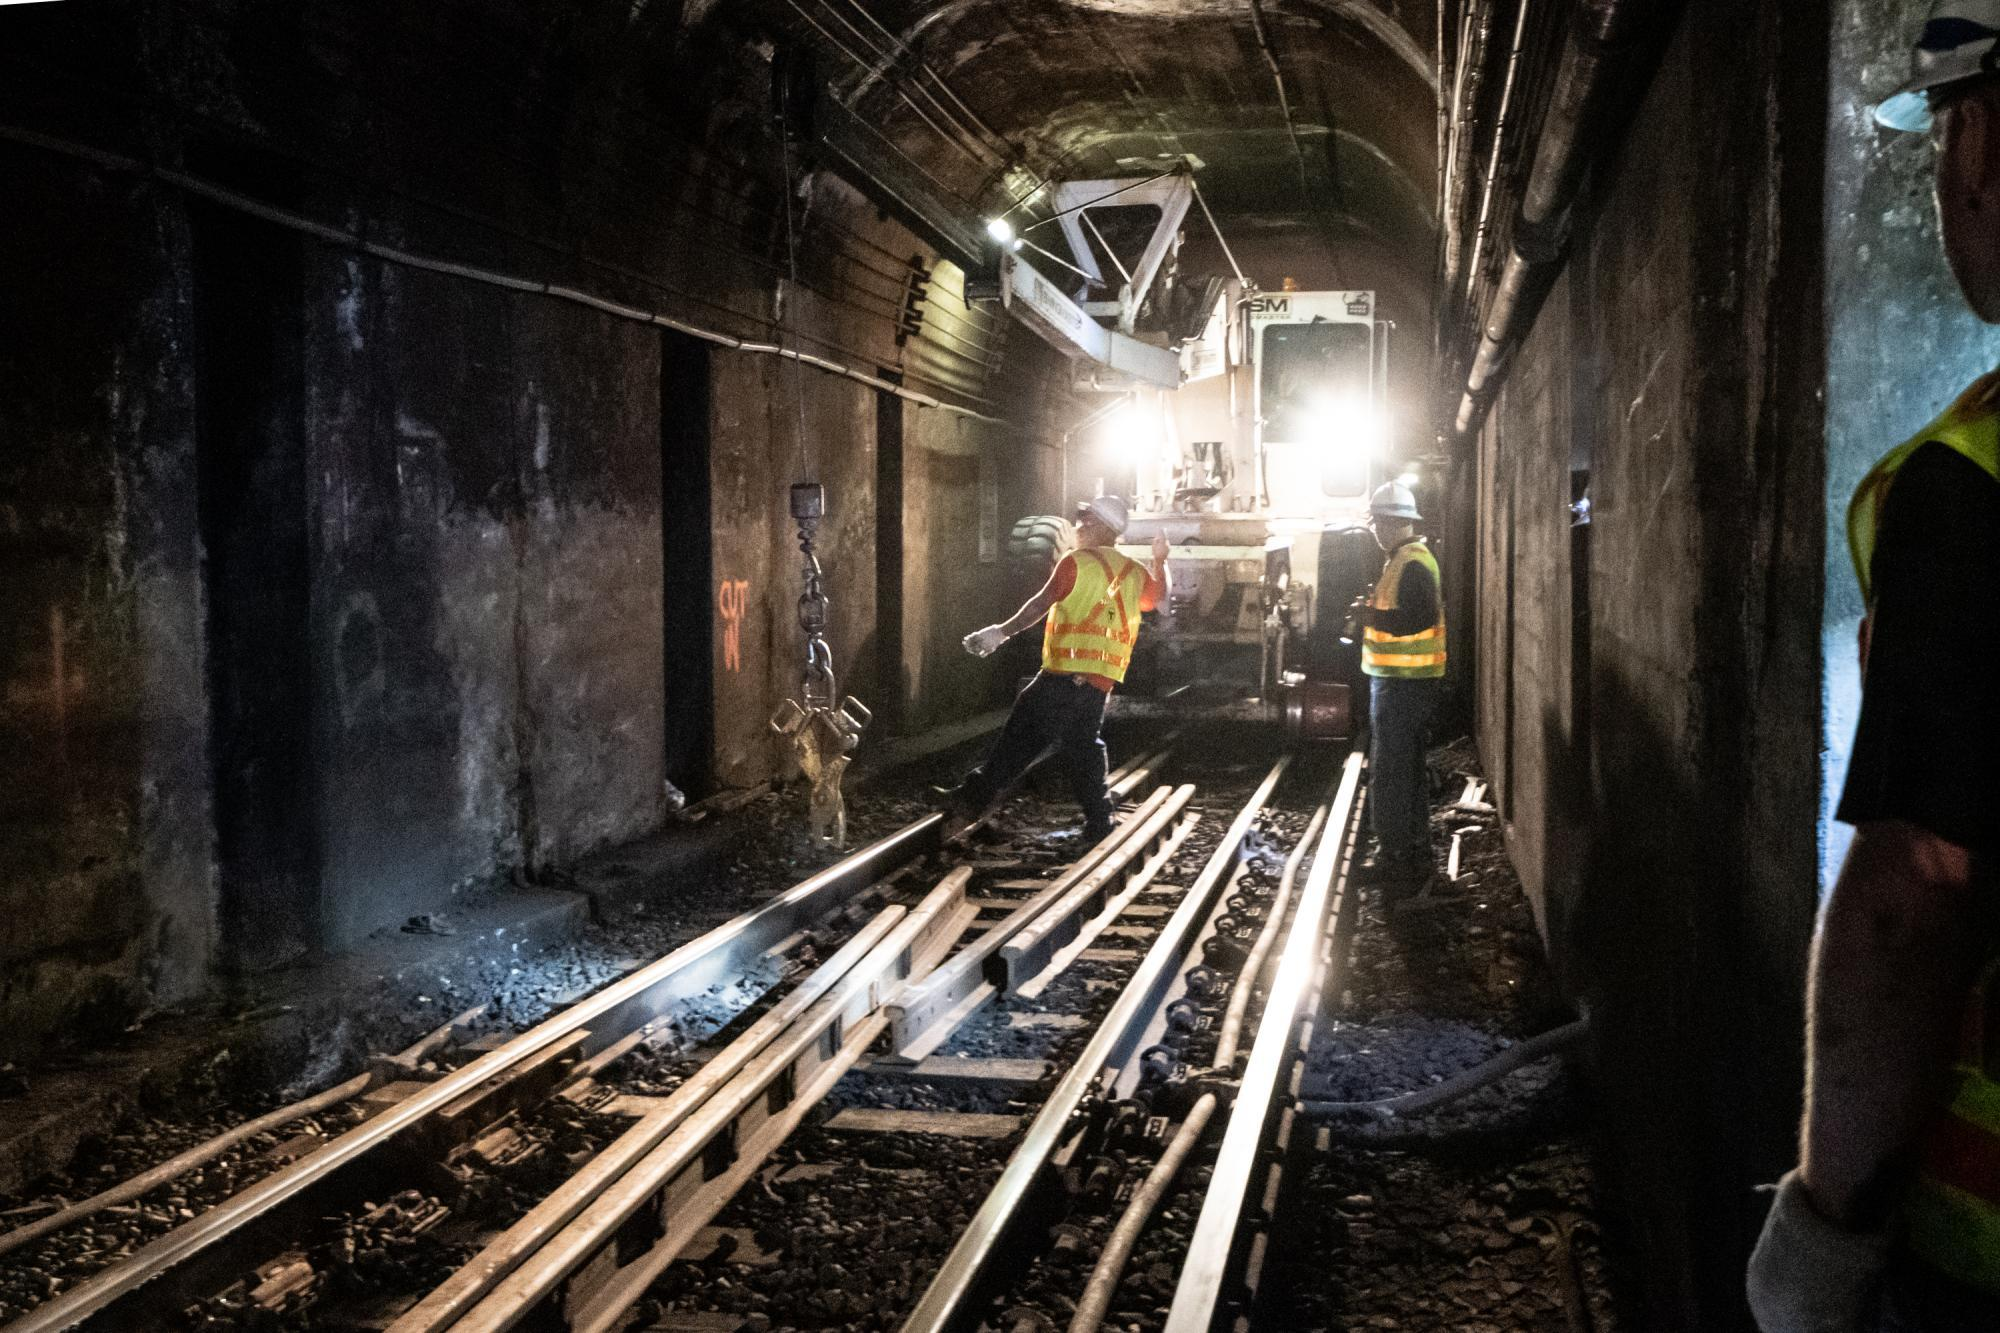 A crew works on rail maintenance in a tunnel, between Bowdoin and Government Center, with heavy machinery in the background.